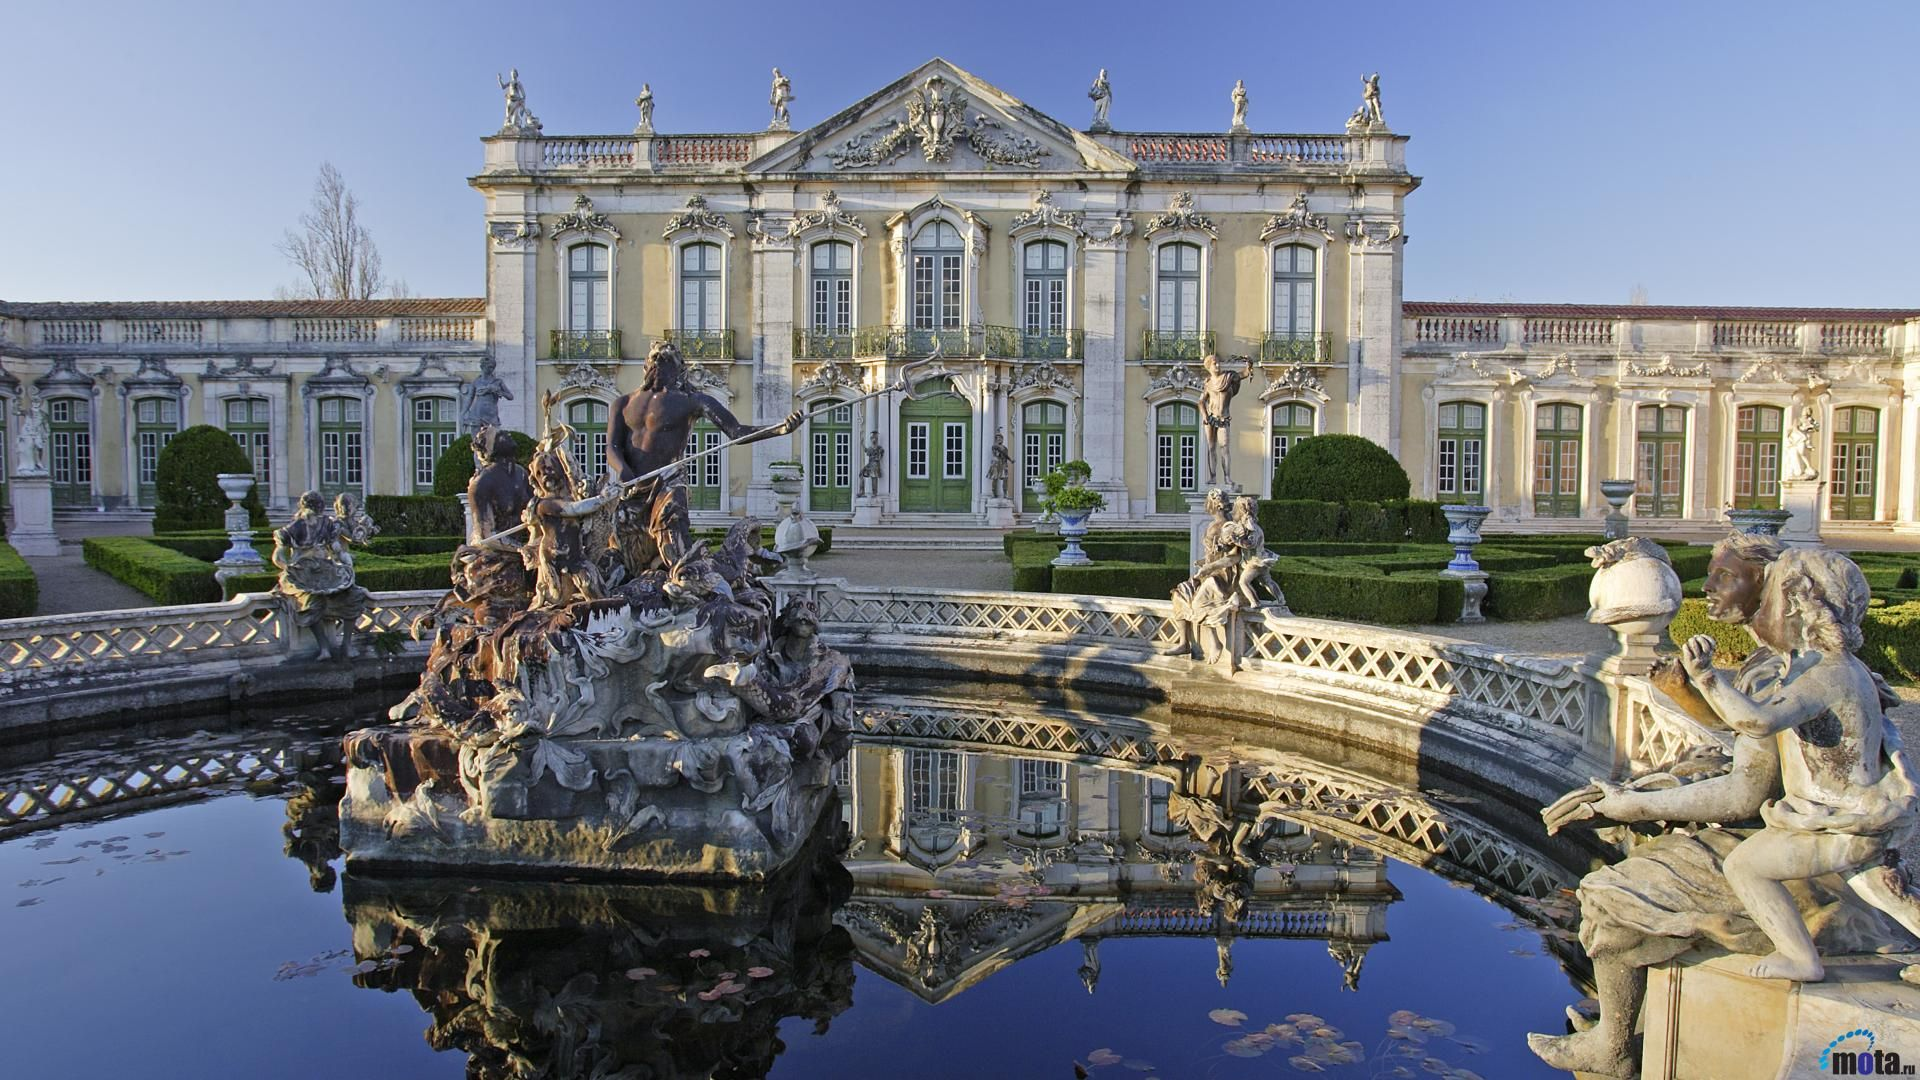 Queluz Palace, Mafra, Portugal